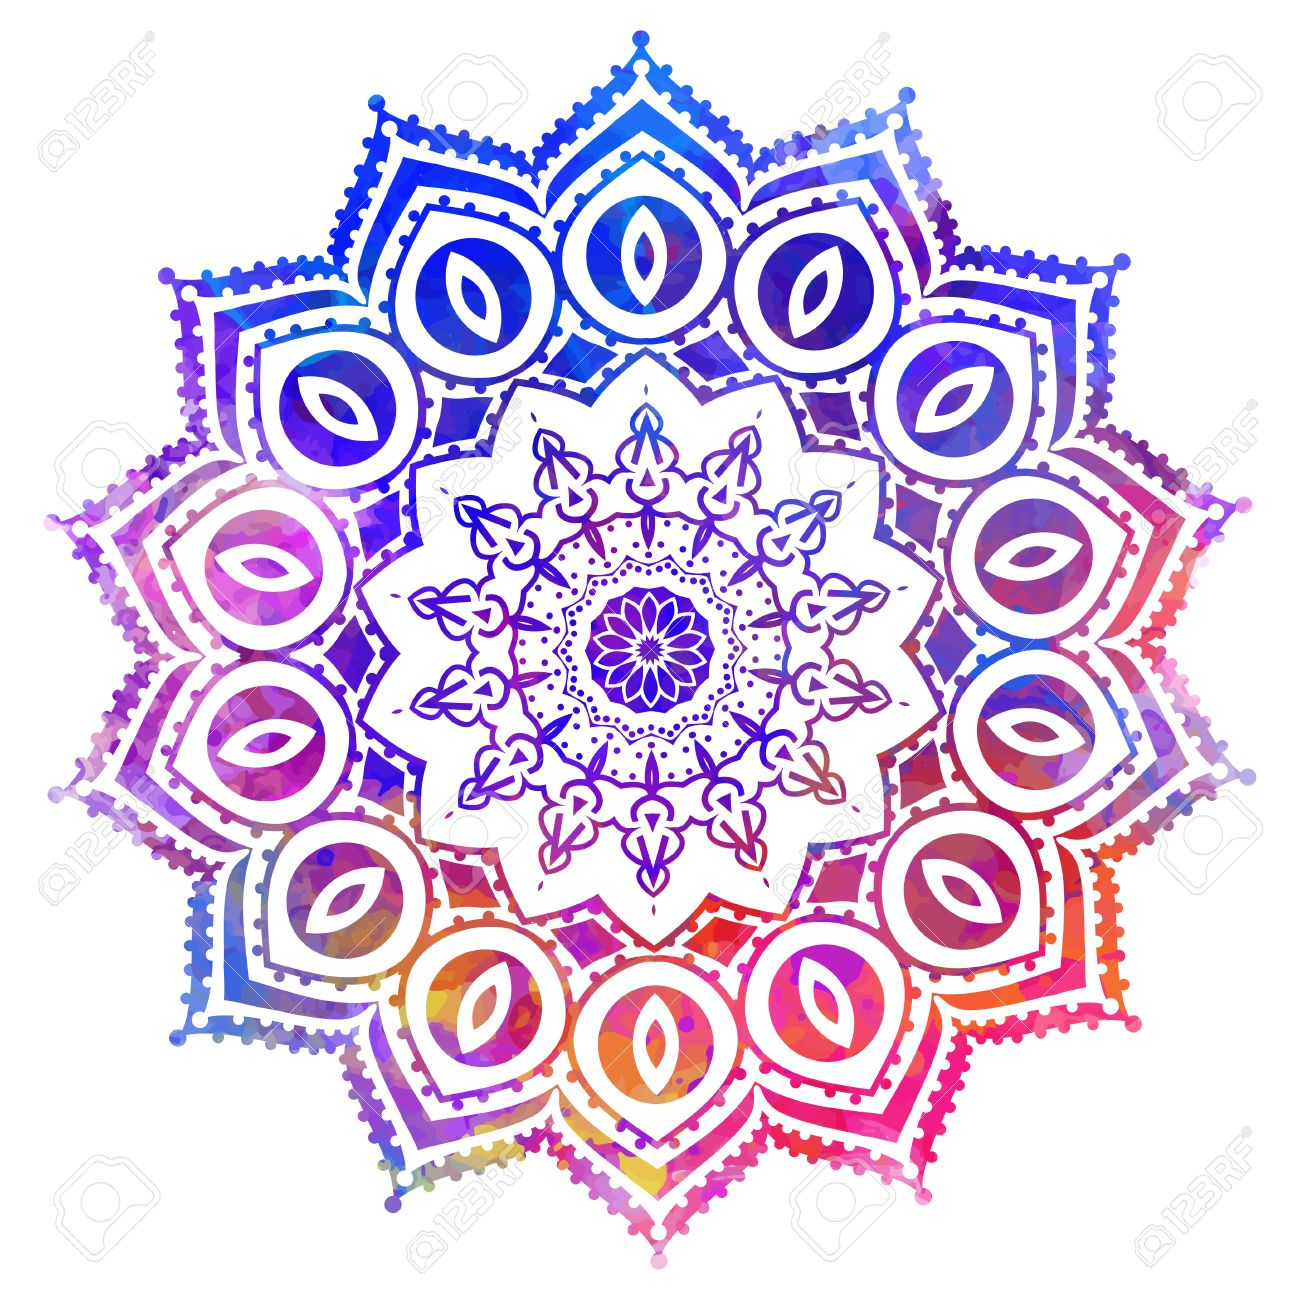 Watercolor Color Card With Mandala Geometric Circle Element